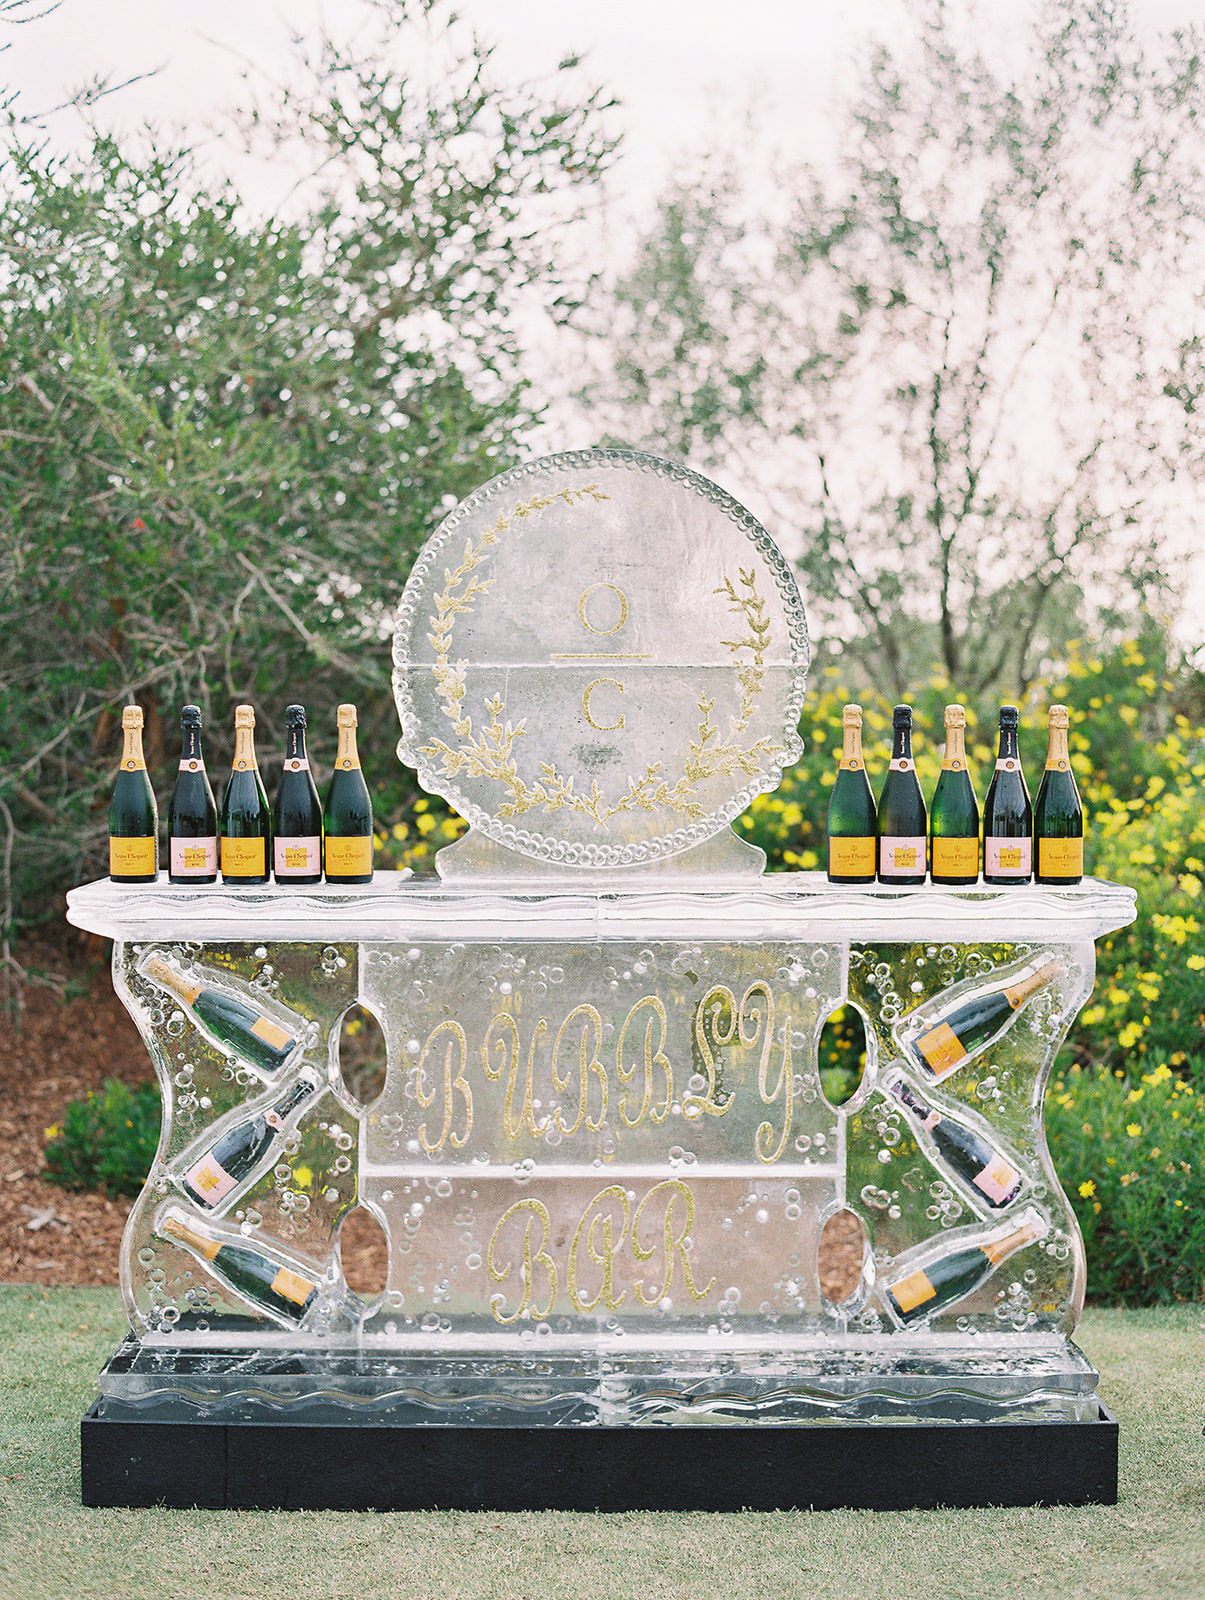 bubbly ice sculpture at wedding